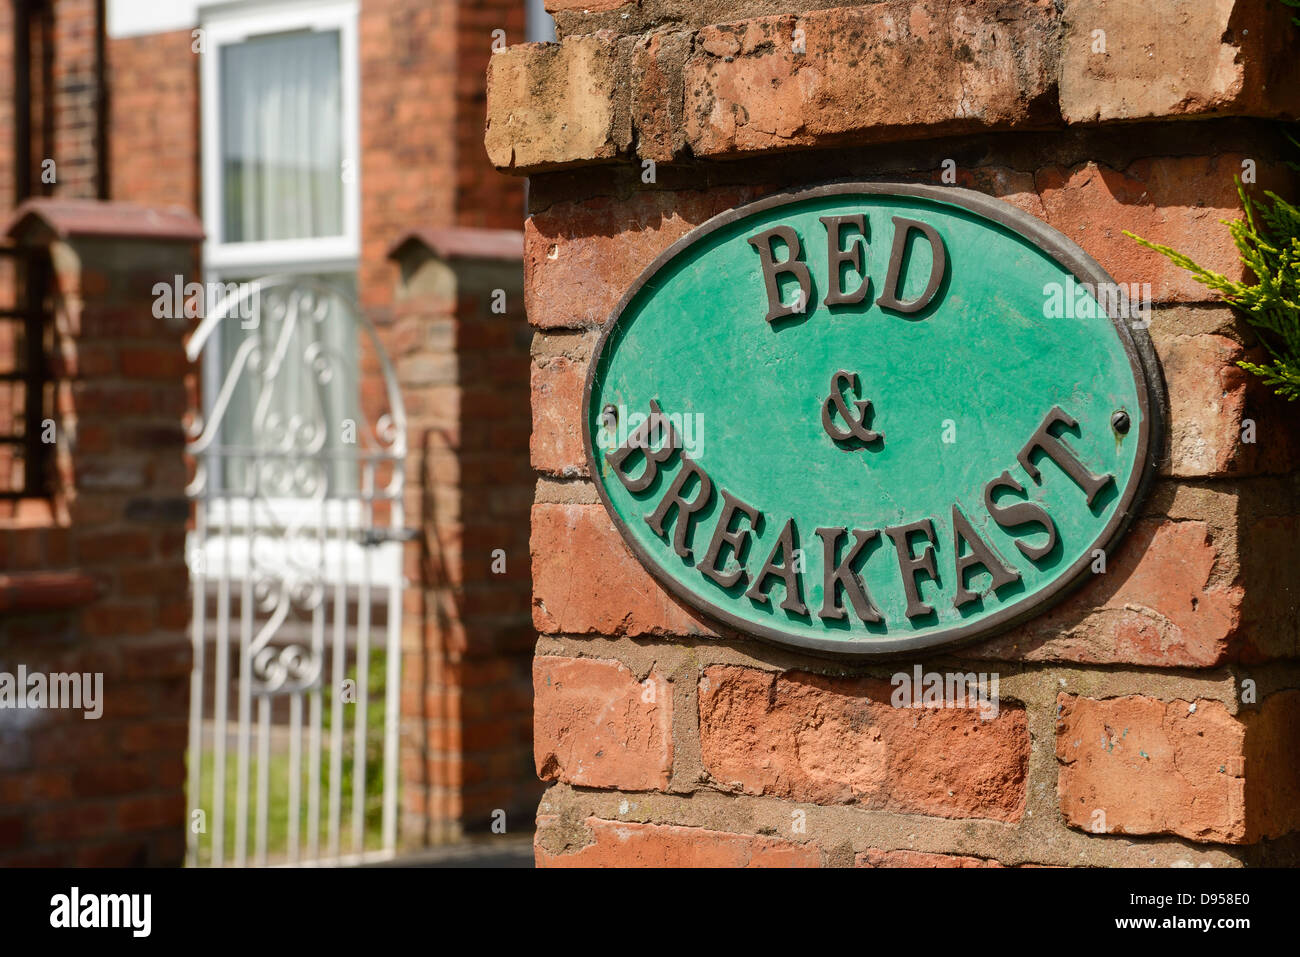 Bed and Breakfast sign Photo Stock